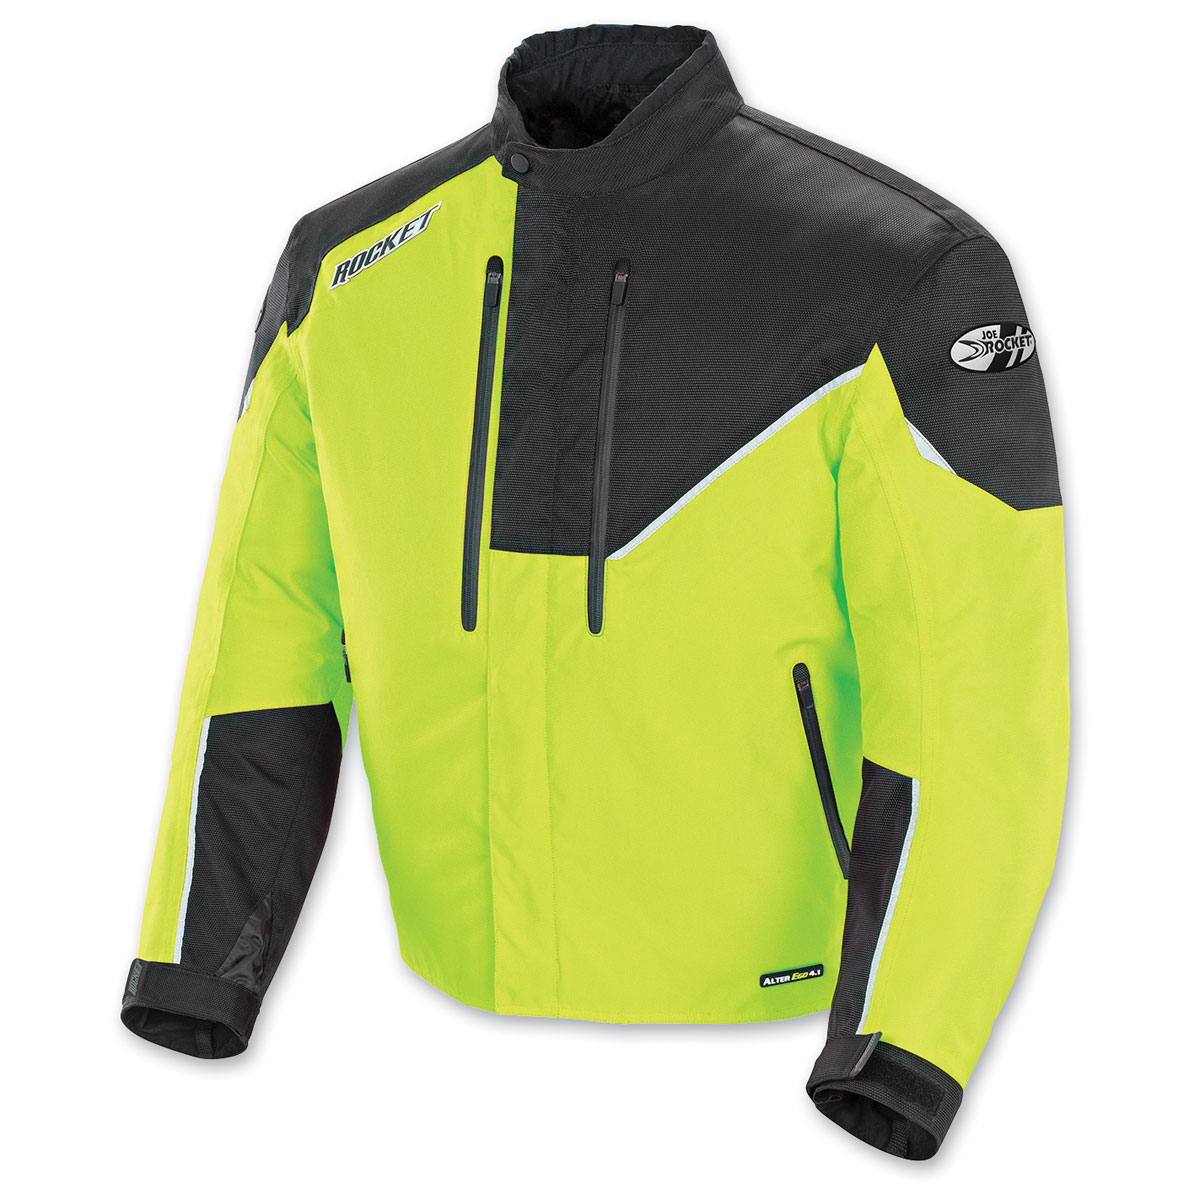 Joe Rocket Men's Alter Ego 4.1 Hi-Viz/Black Jacket